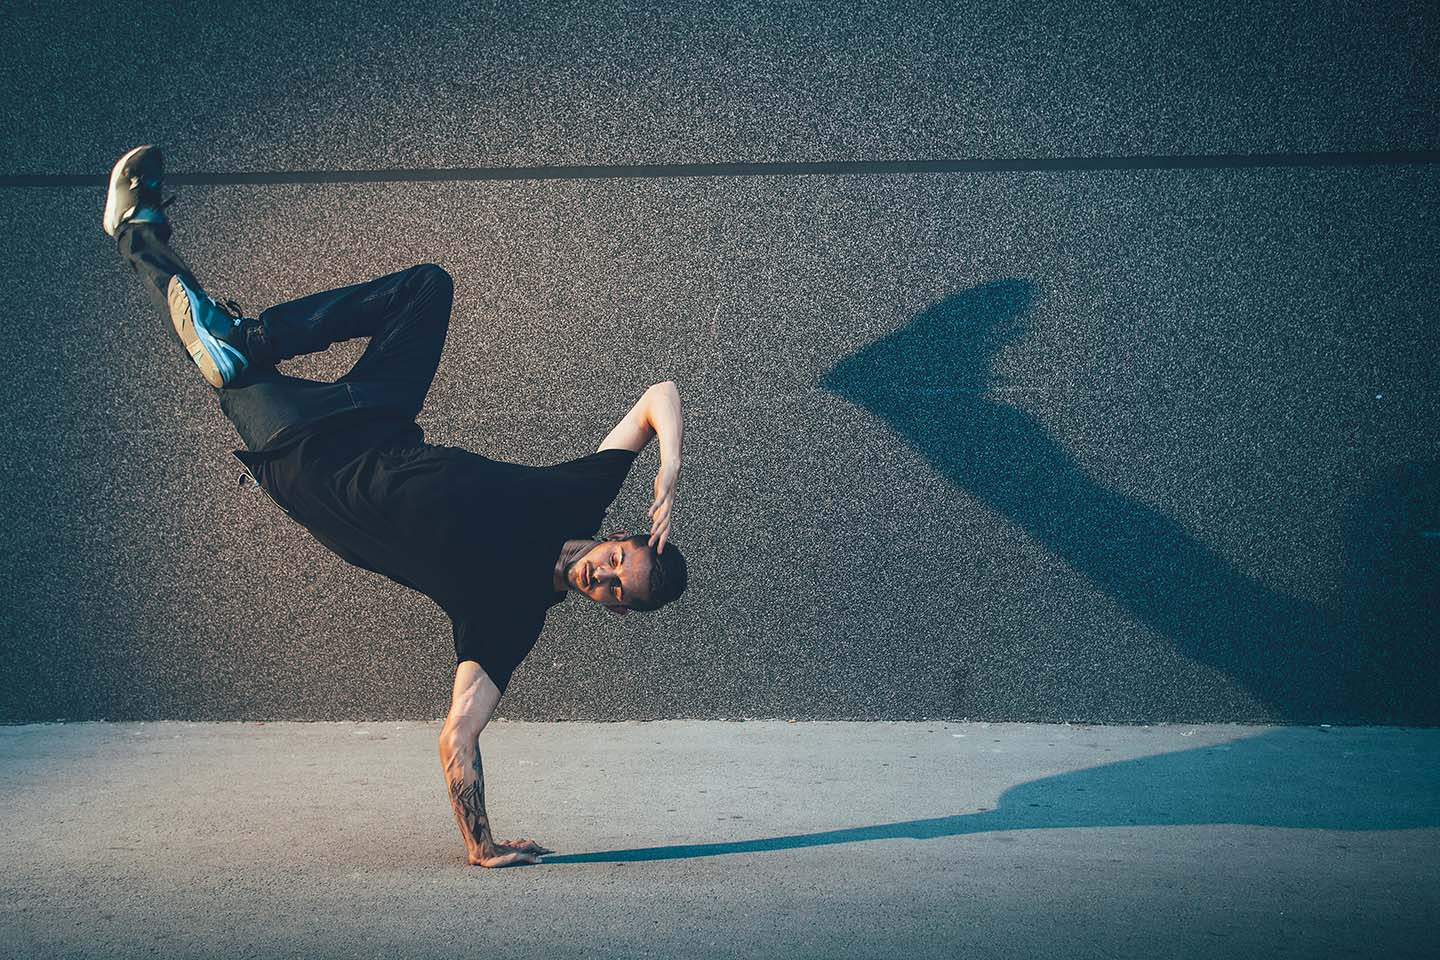 BBoy dancing and doing handstand on street